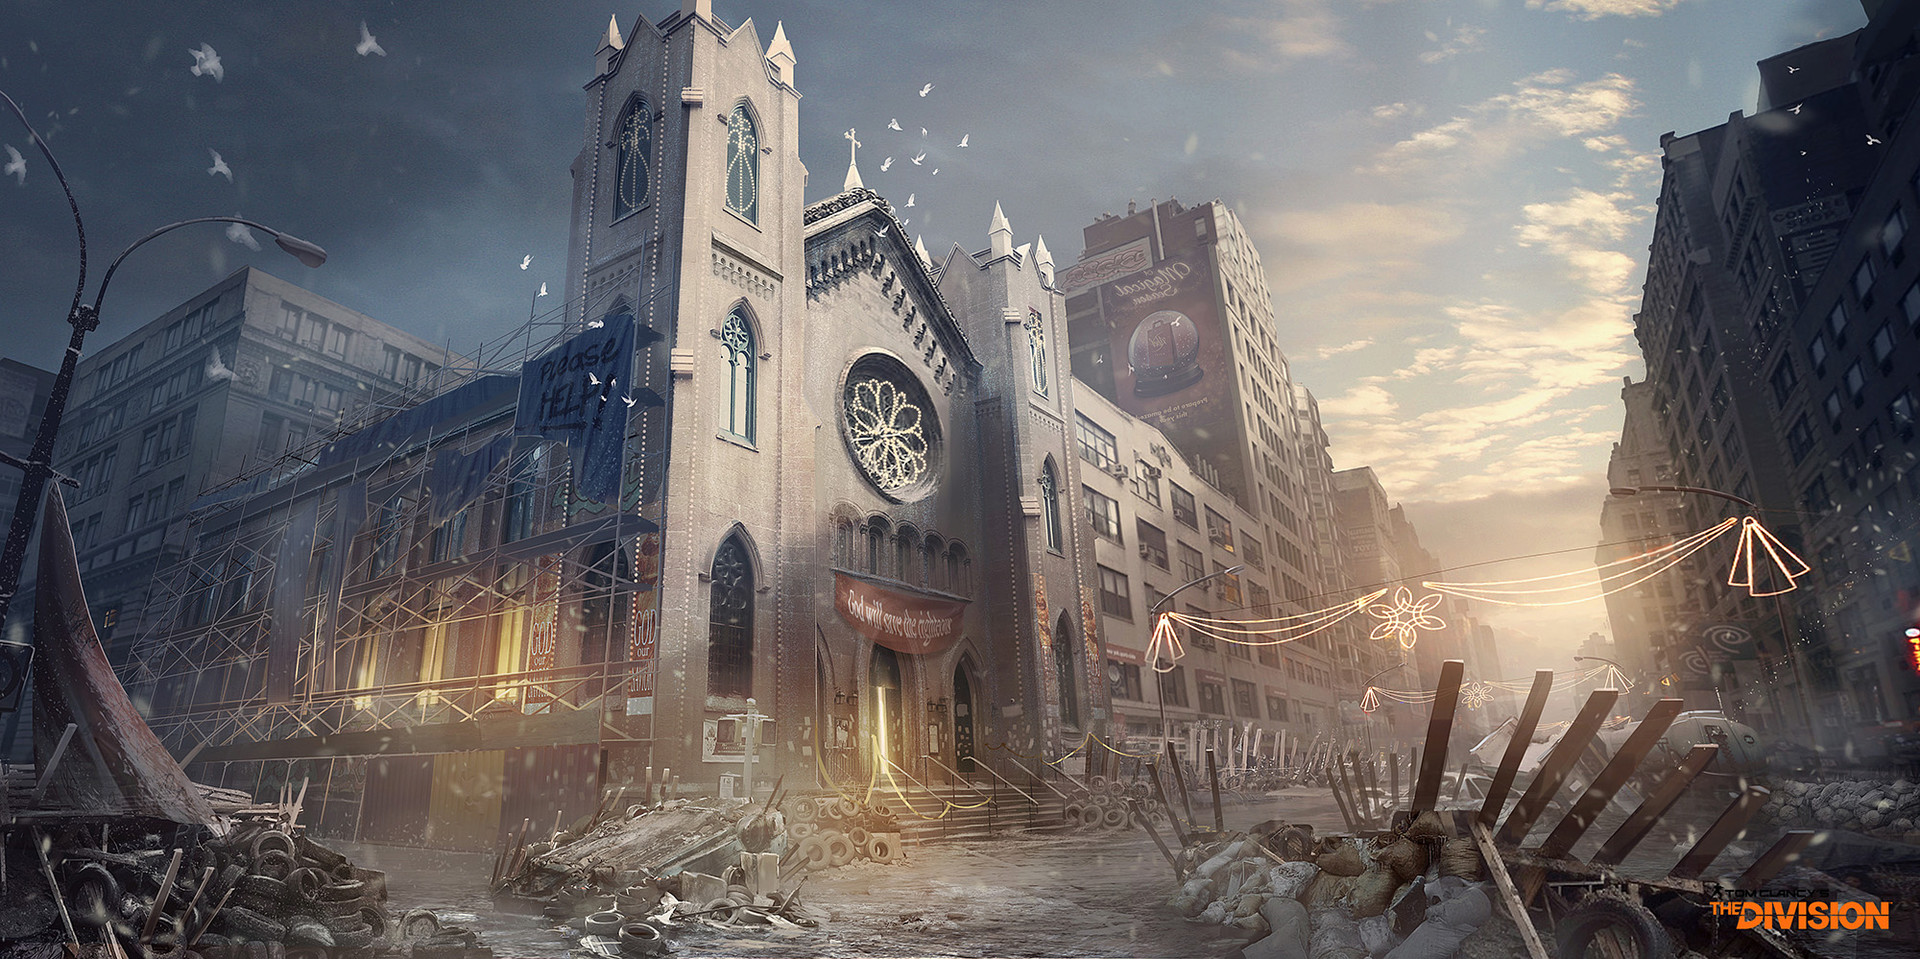 Florian De Gesincourt Concept Art The Division Church 01 G